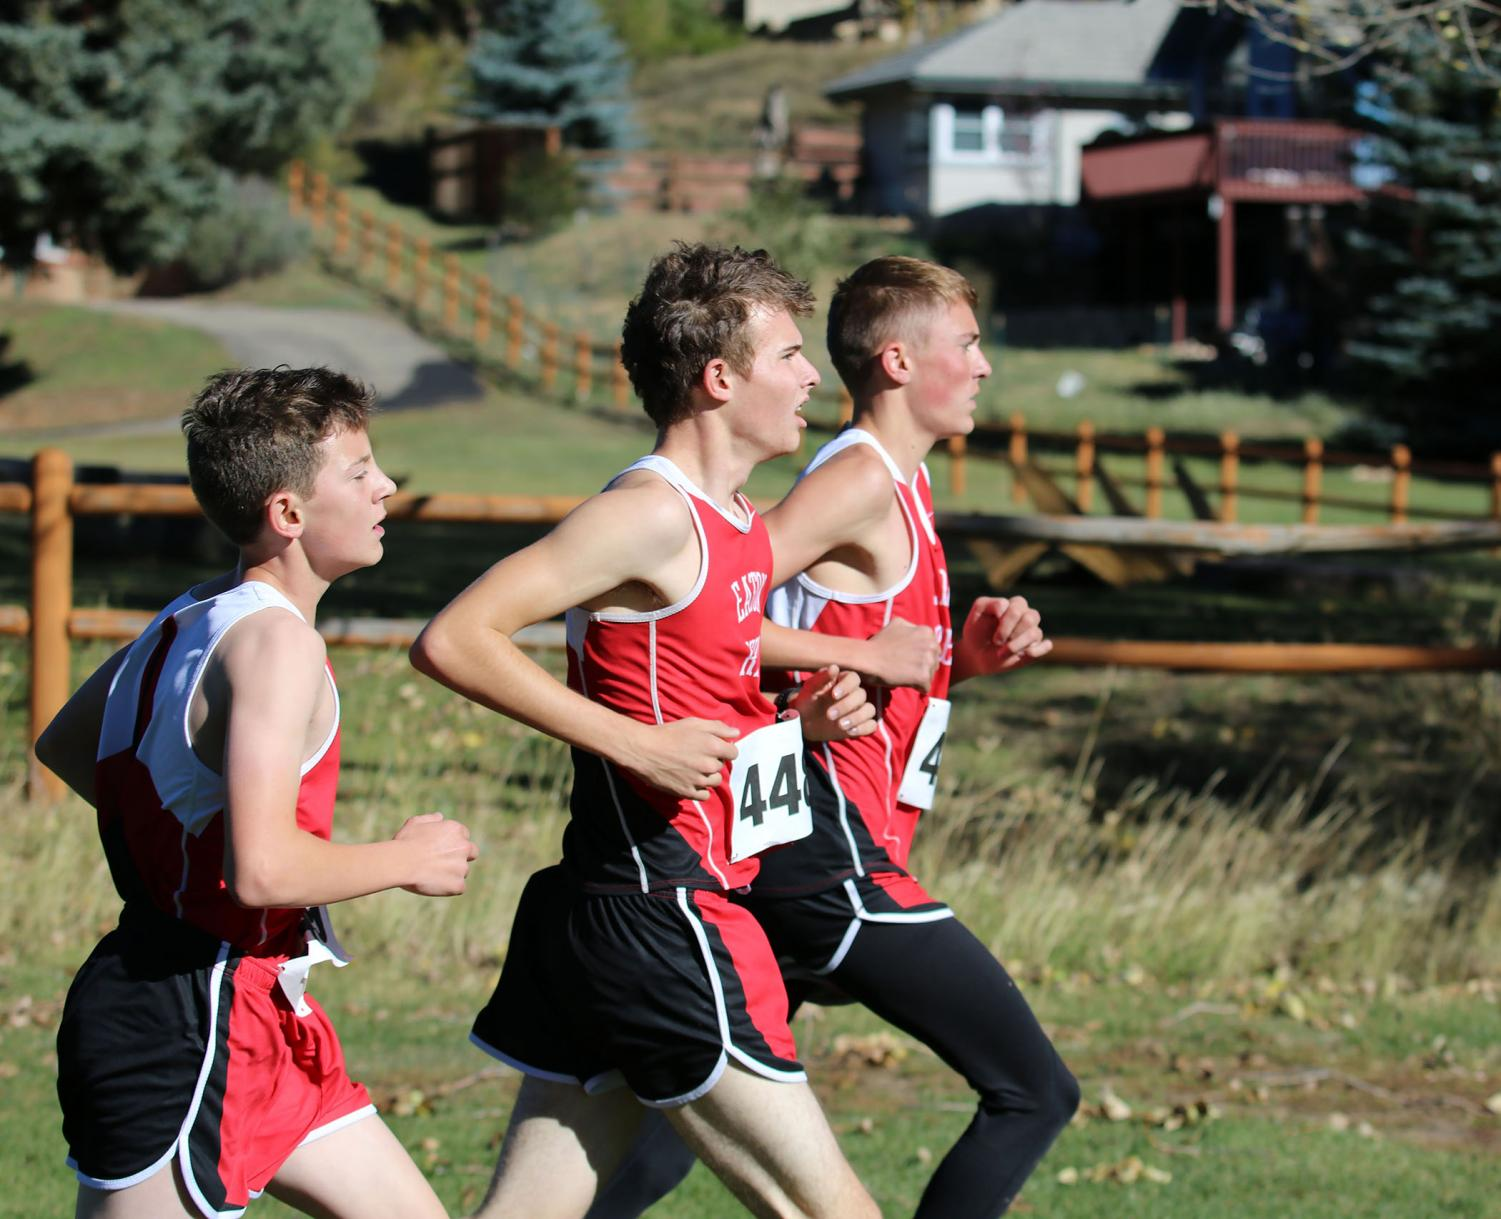 Everett Preston (21), Jayce Parrish (19) and Dalton Duncan (19) compete together for a fast time.